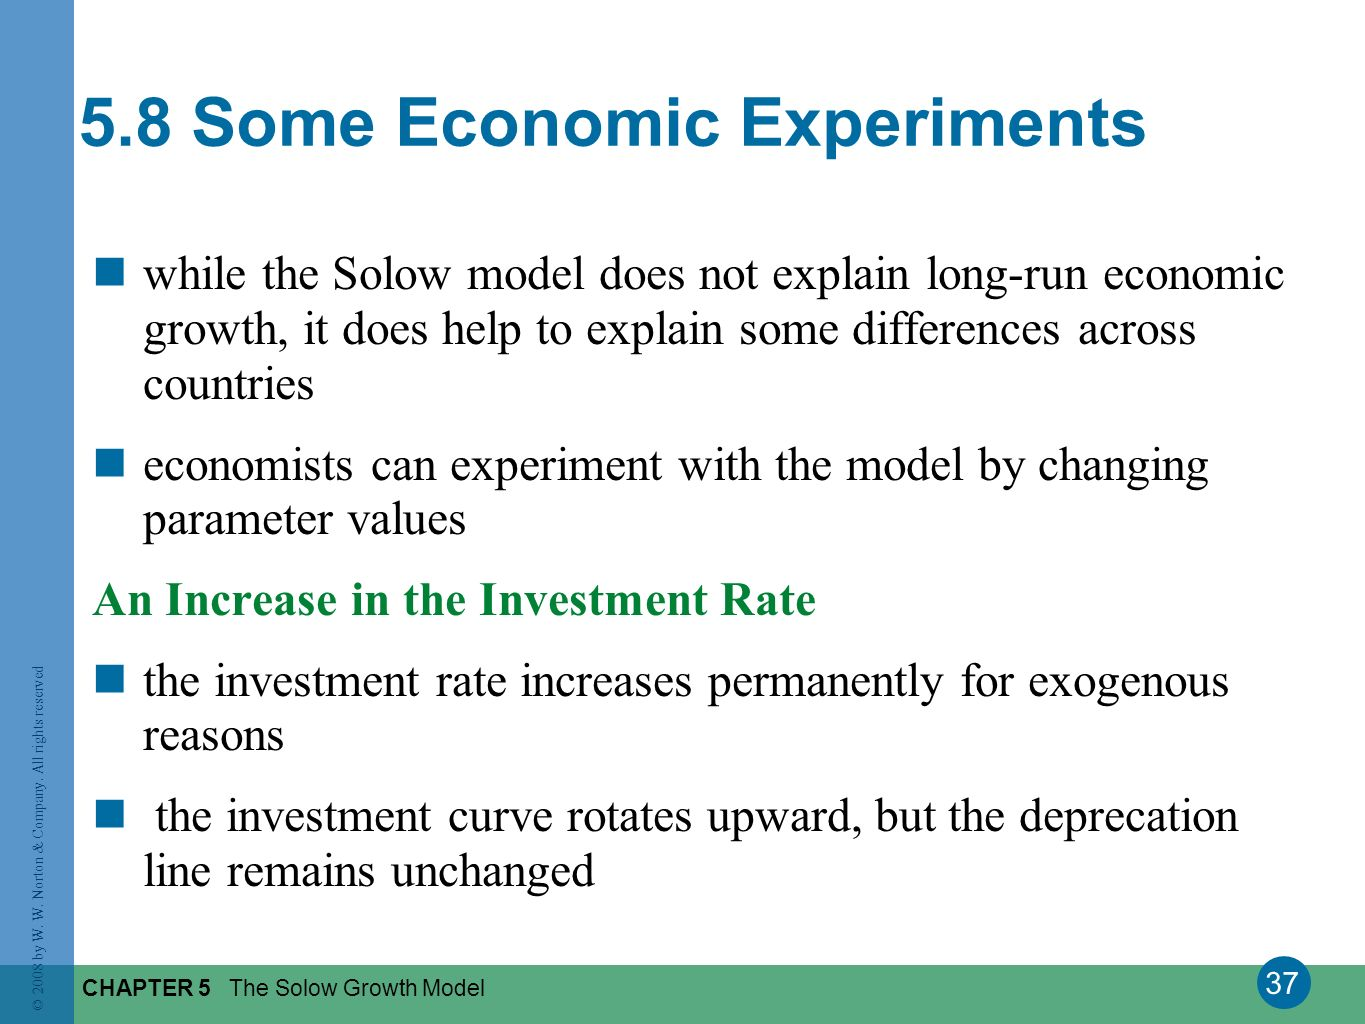 5.8 Some Economic Experiments